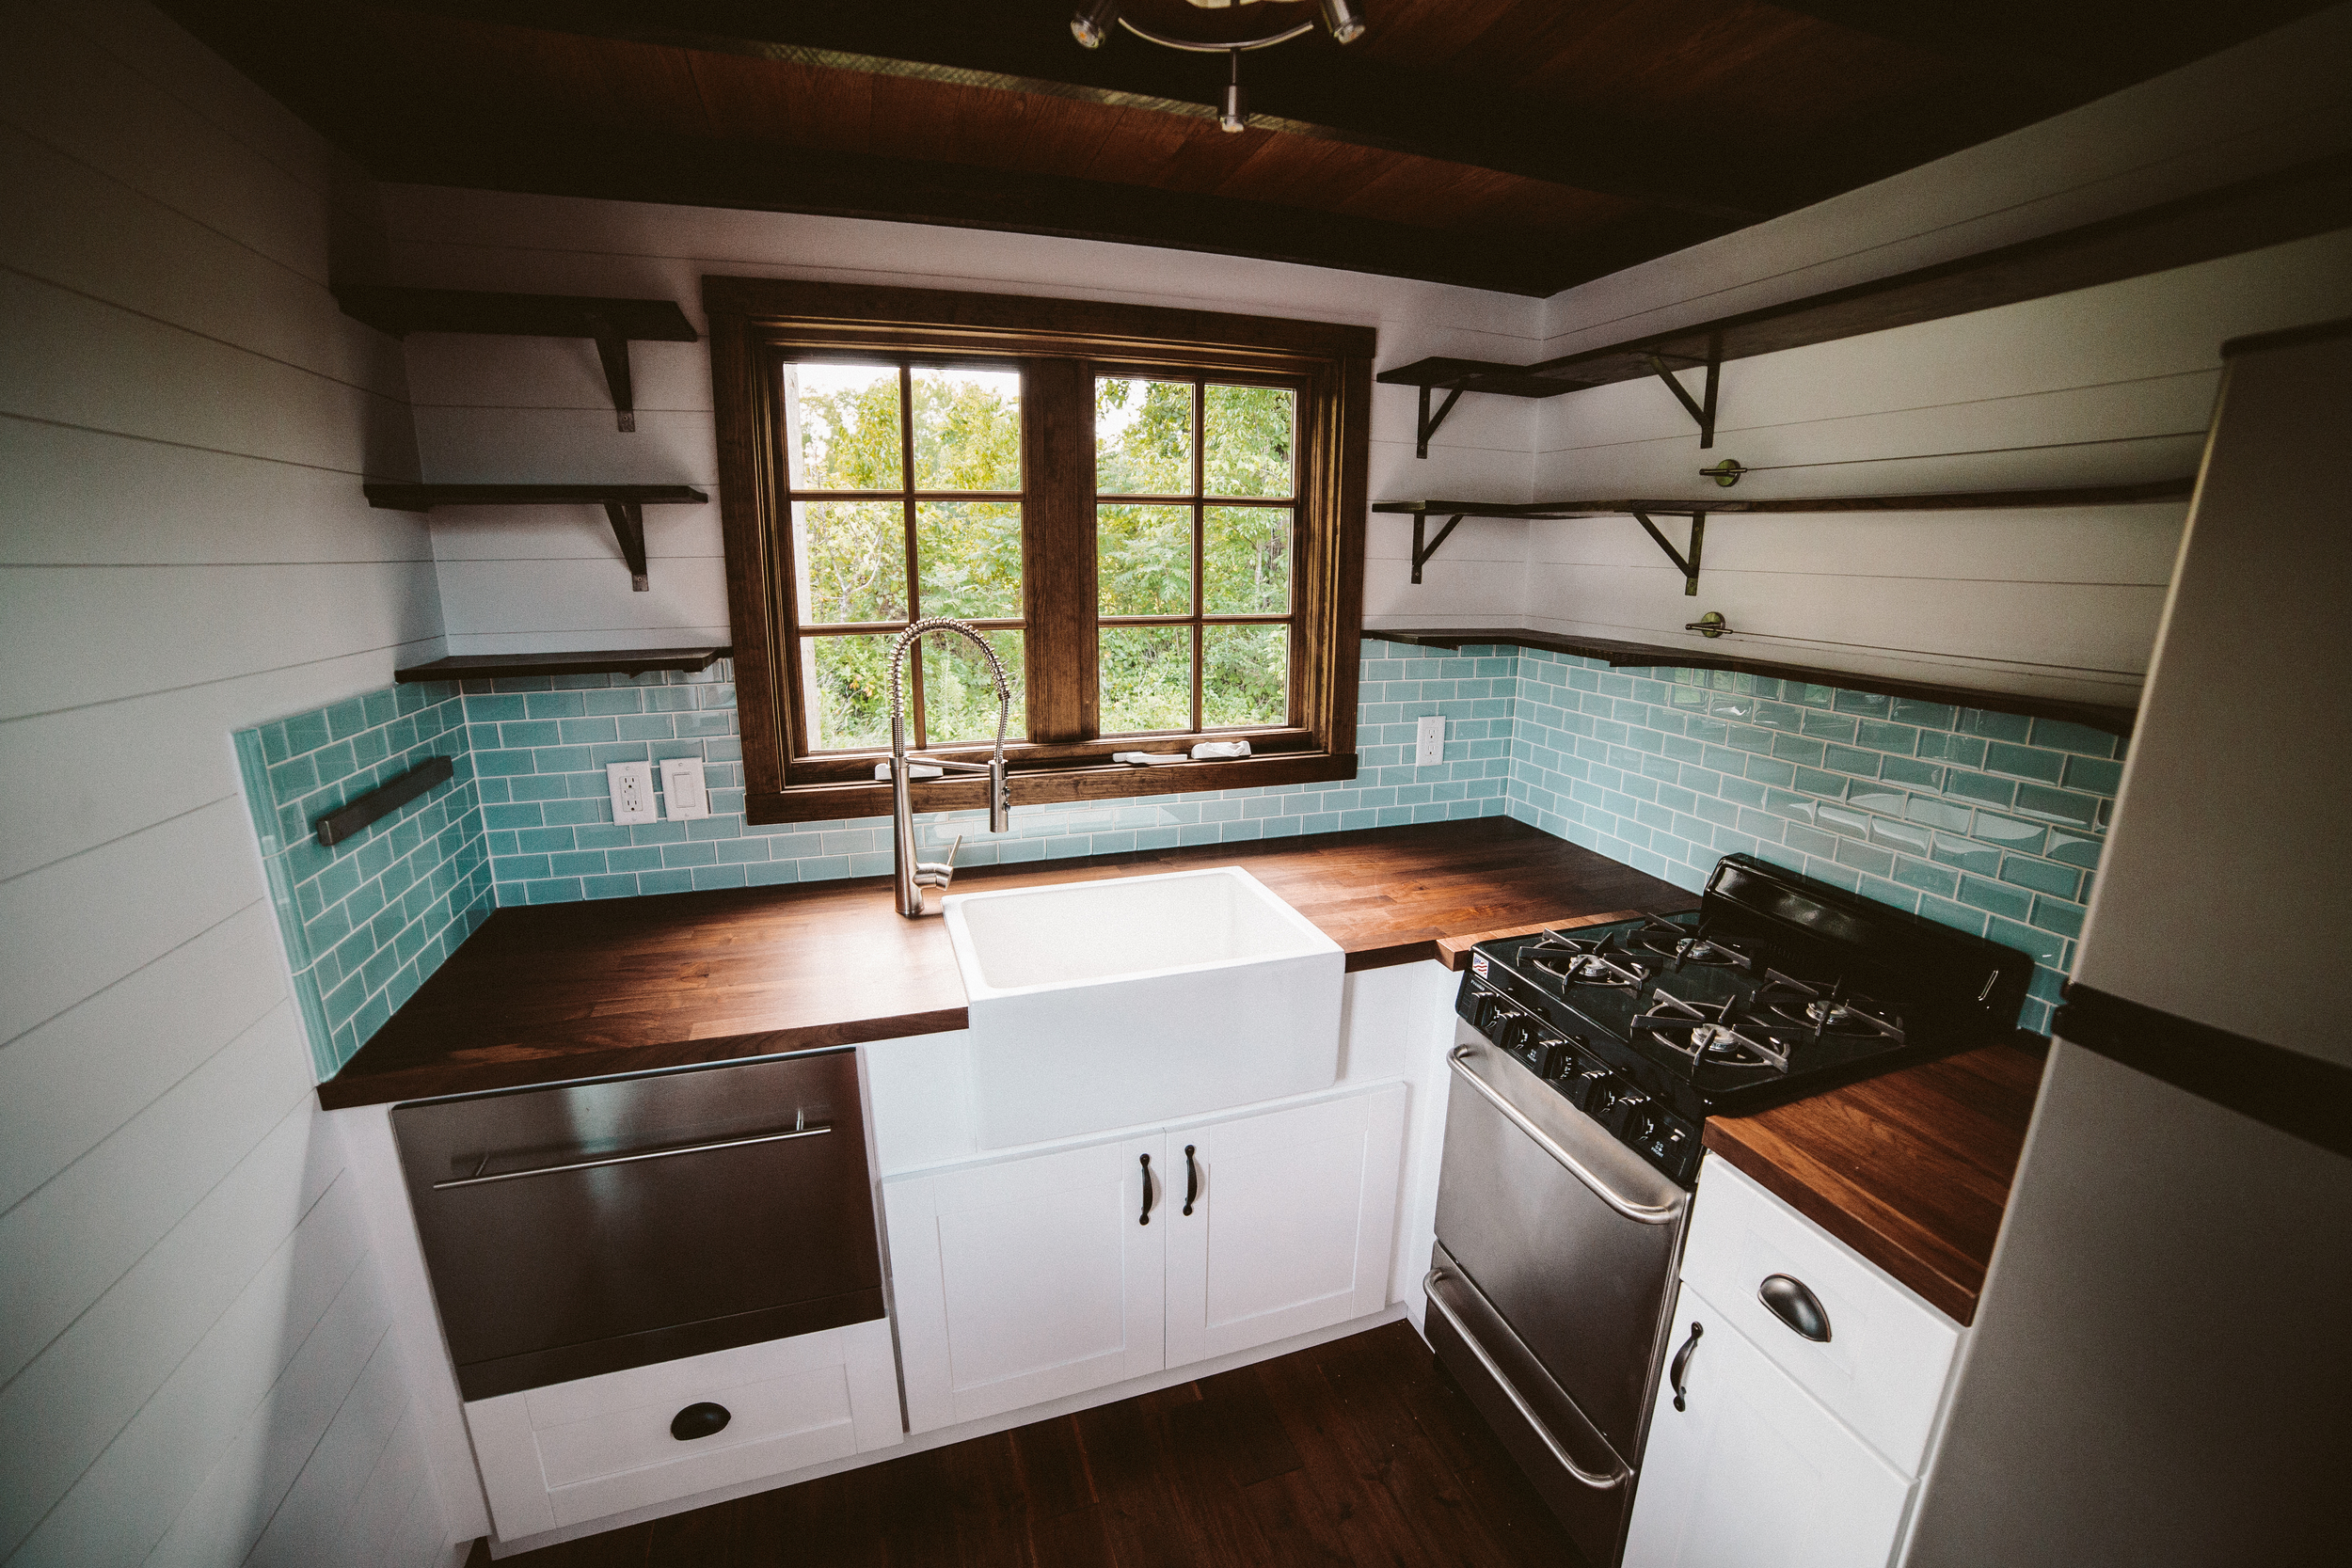 The Mayflower - Farmhouse sink, butcher block counters, custom welded open shelving, seaglass subway tile, oven, drawer dishwasher, and french casement window